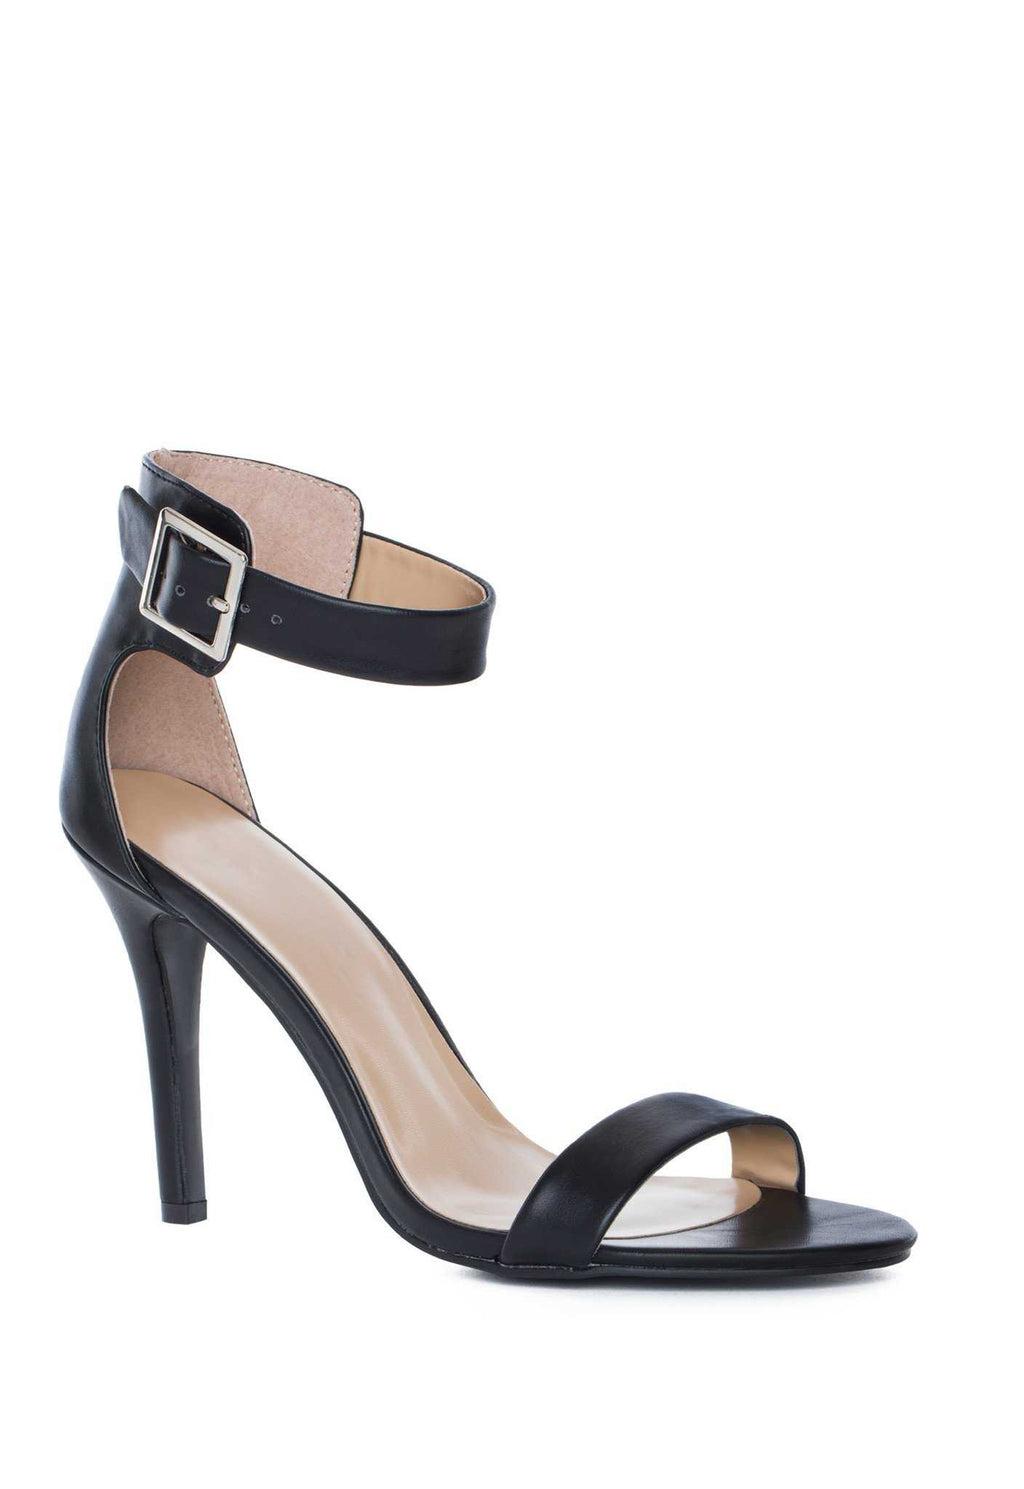 Shoes - Giovanna Heels - Black